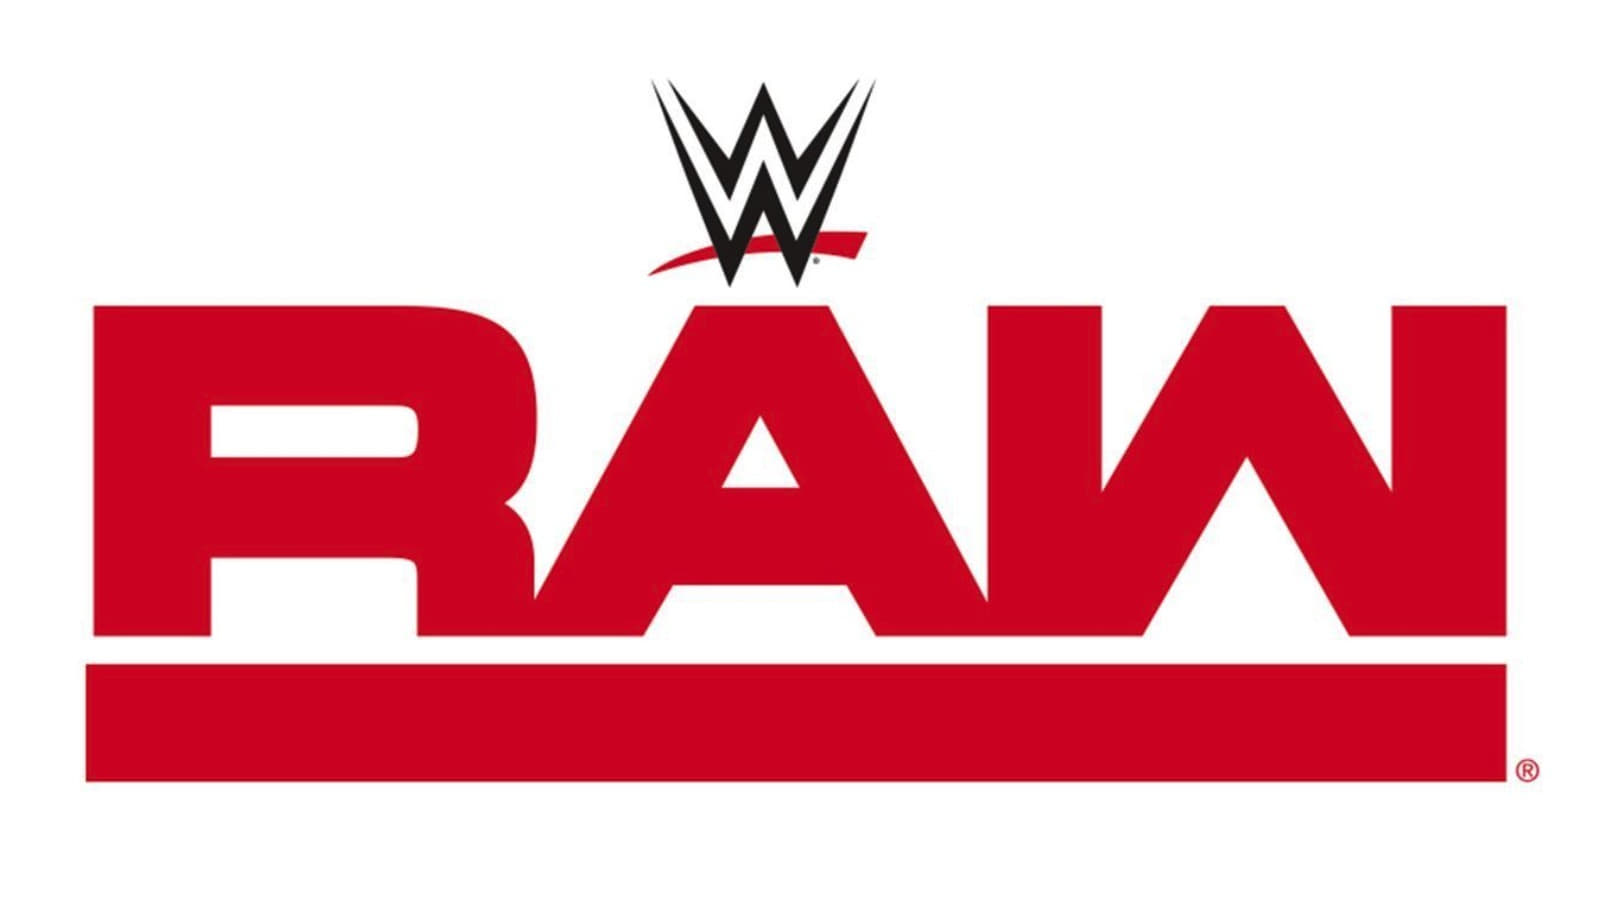 WWE Raw - Season 8 Episode 2 : RAW is WAR 346